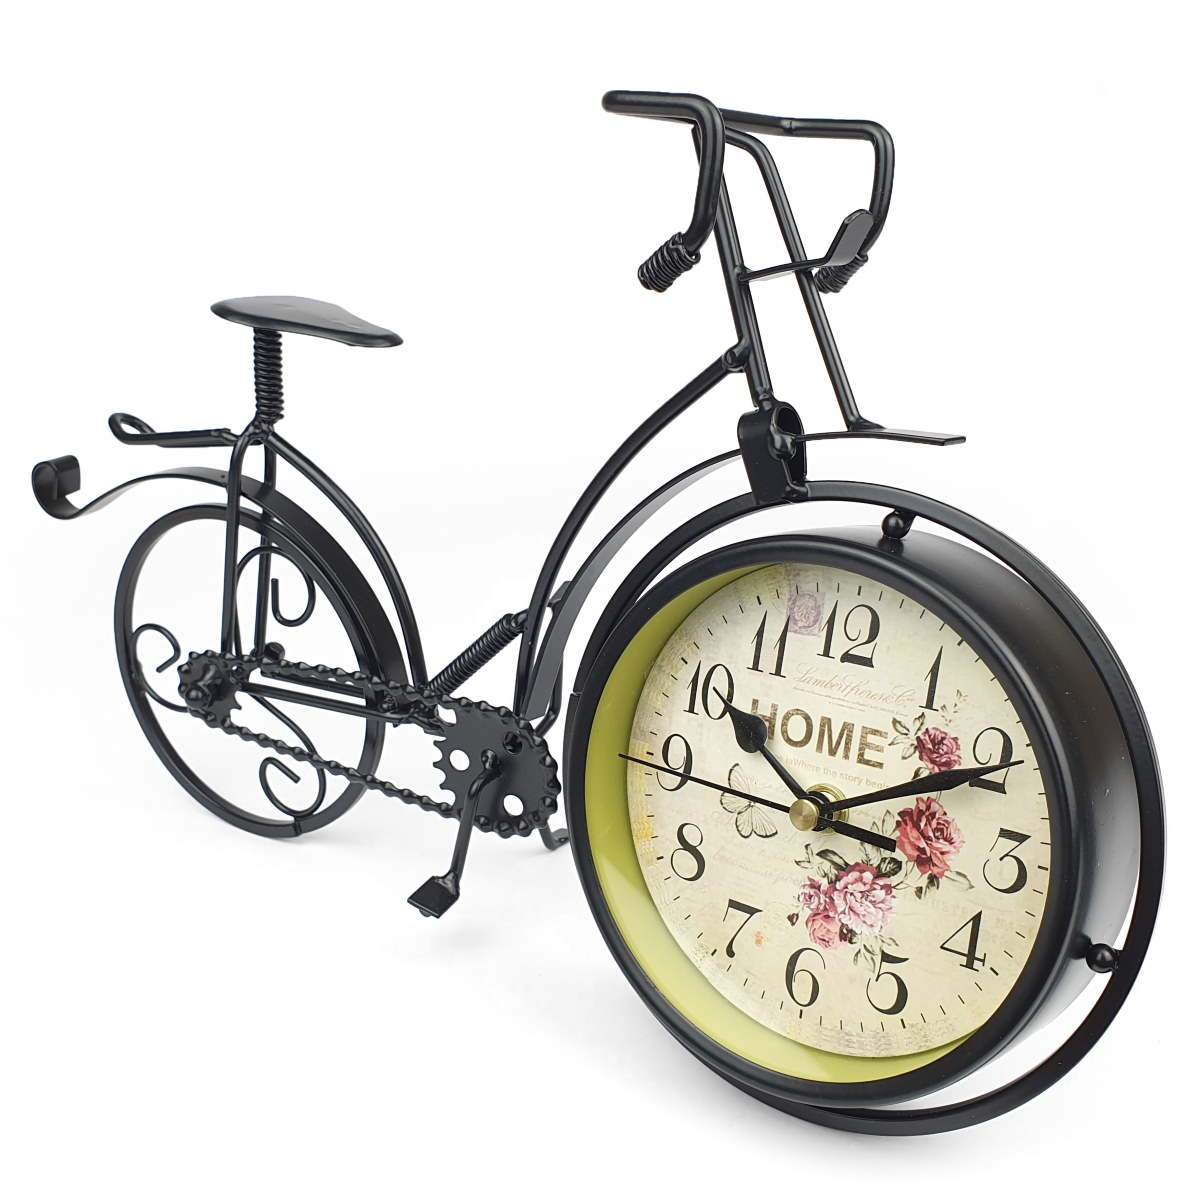 Victory Colton Artistic Metal Bicycle Desk Clock Black 34cm TAA 106B 1